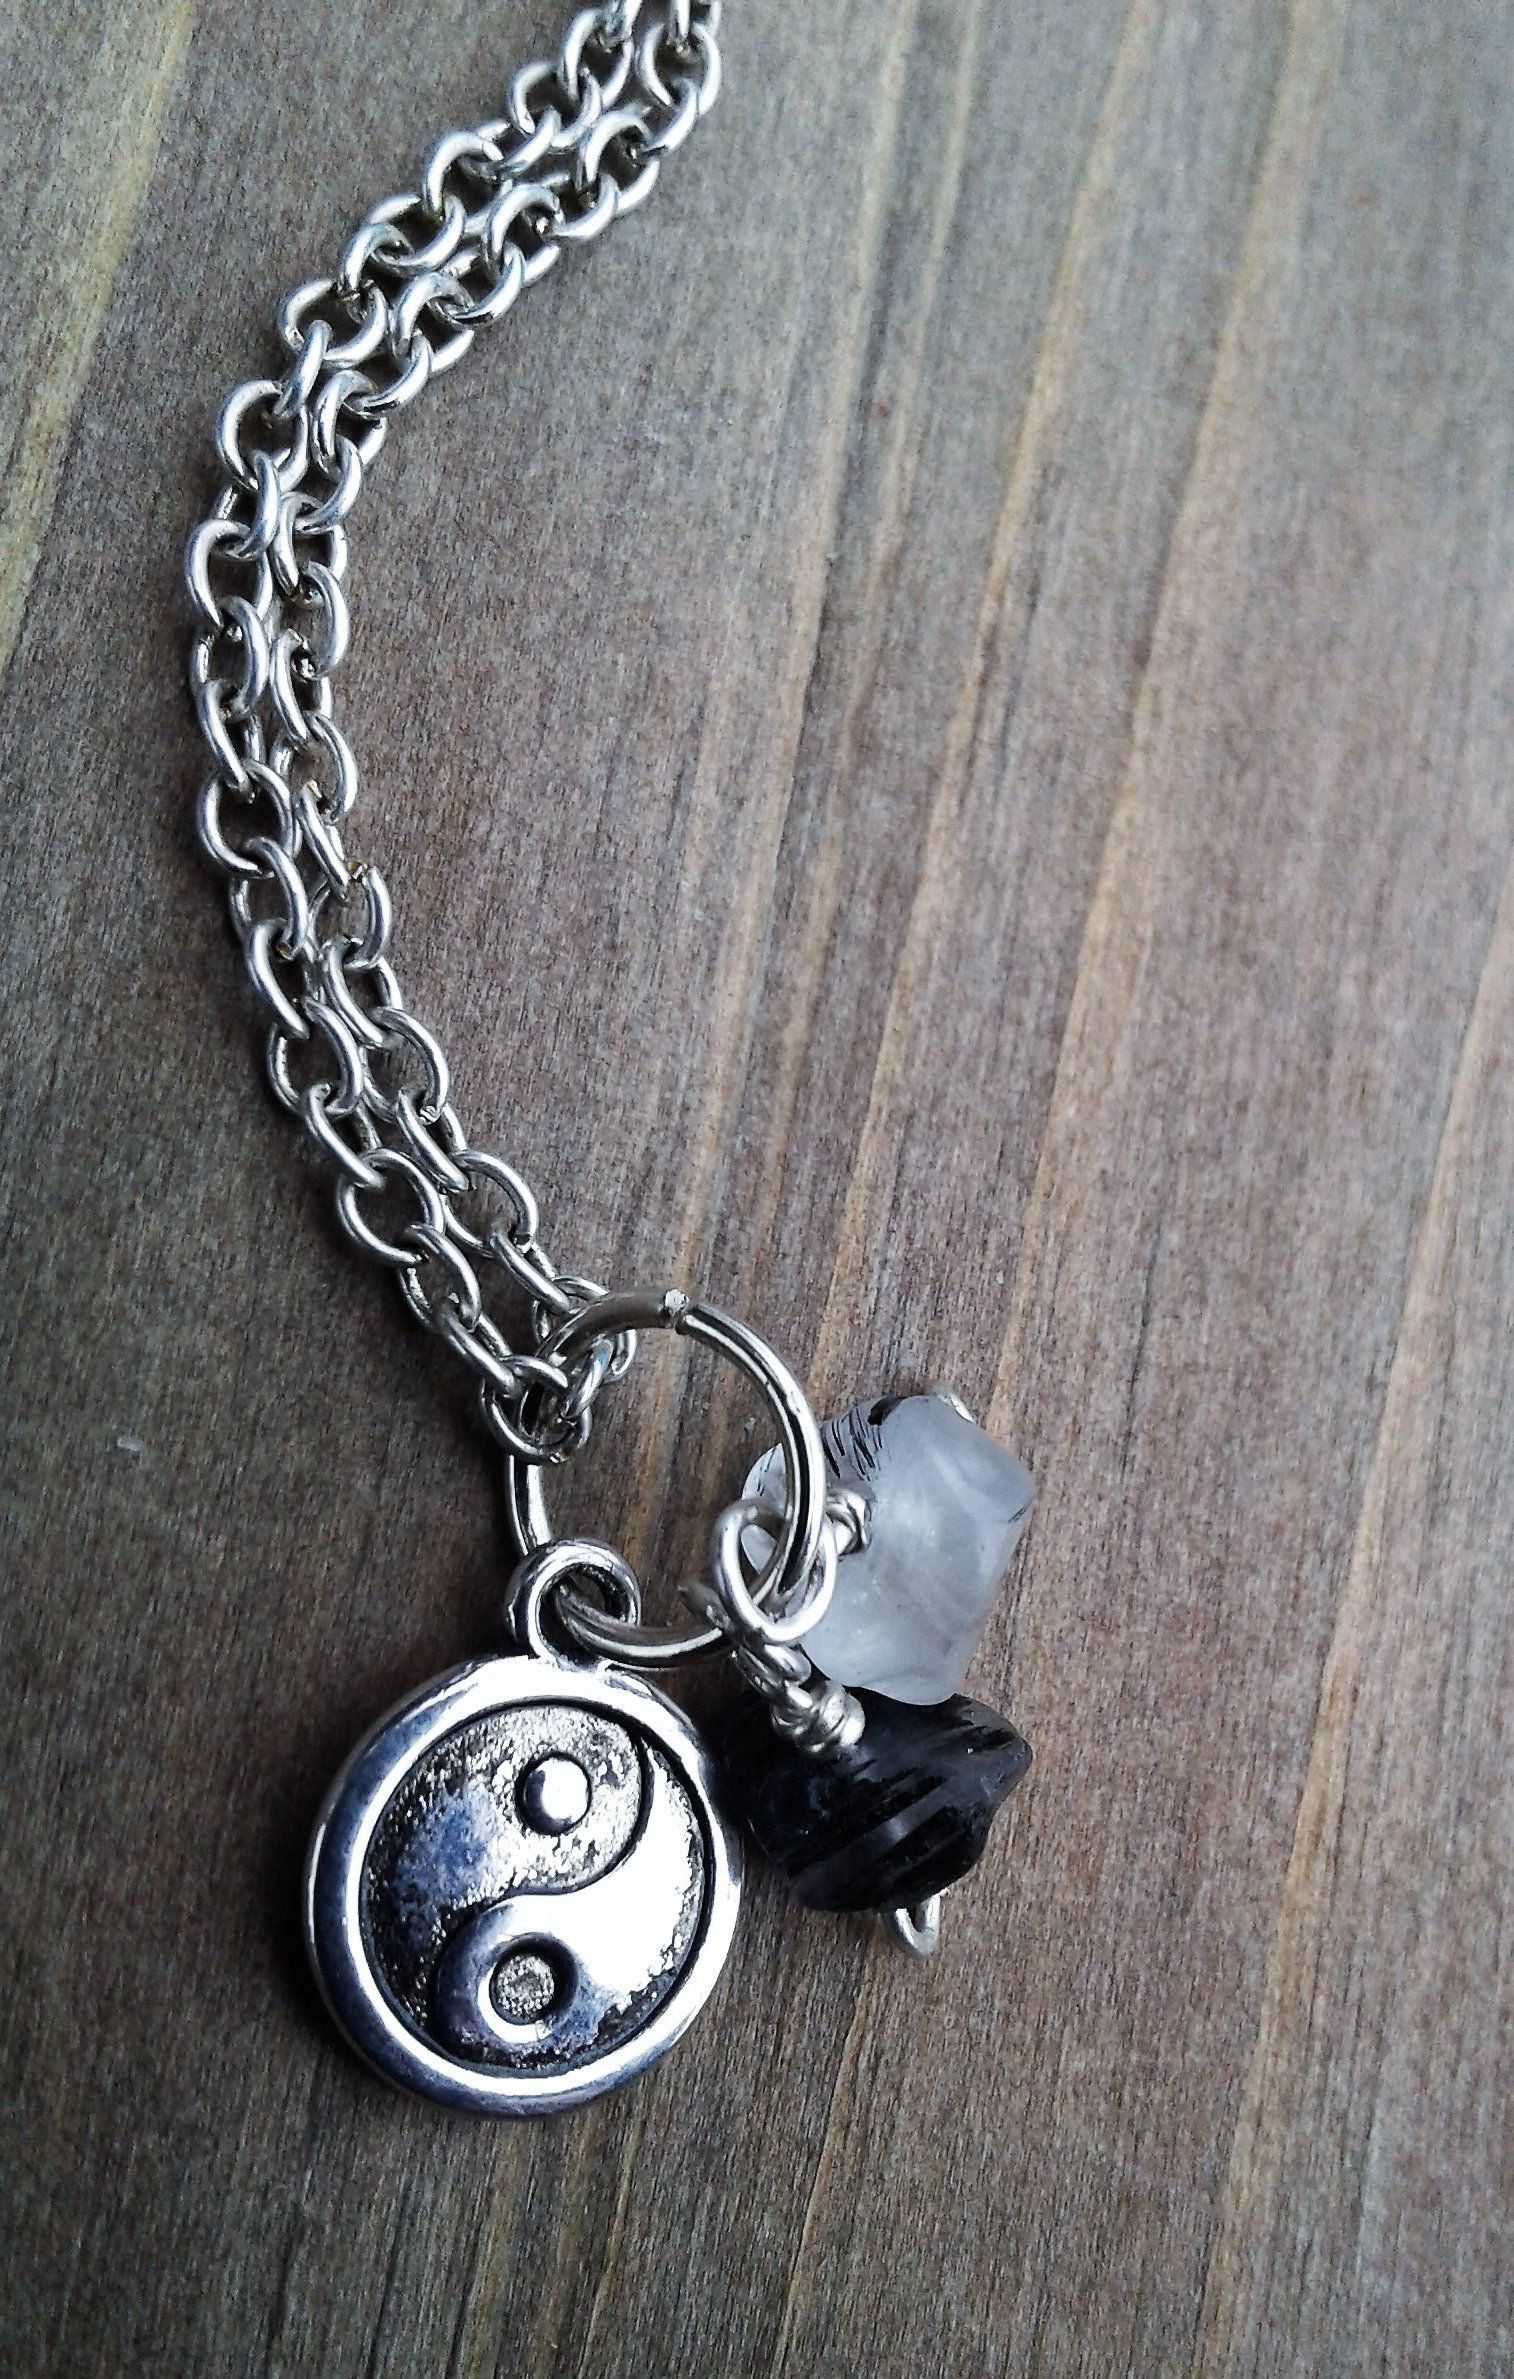 Tiny Yin Yang Necklace Healing Jewelry Inspirational Gift Birthday Anniversary Under 10 Mothers Day For Mom